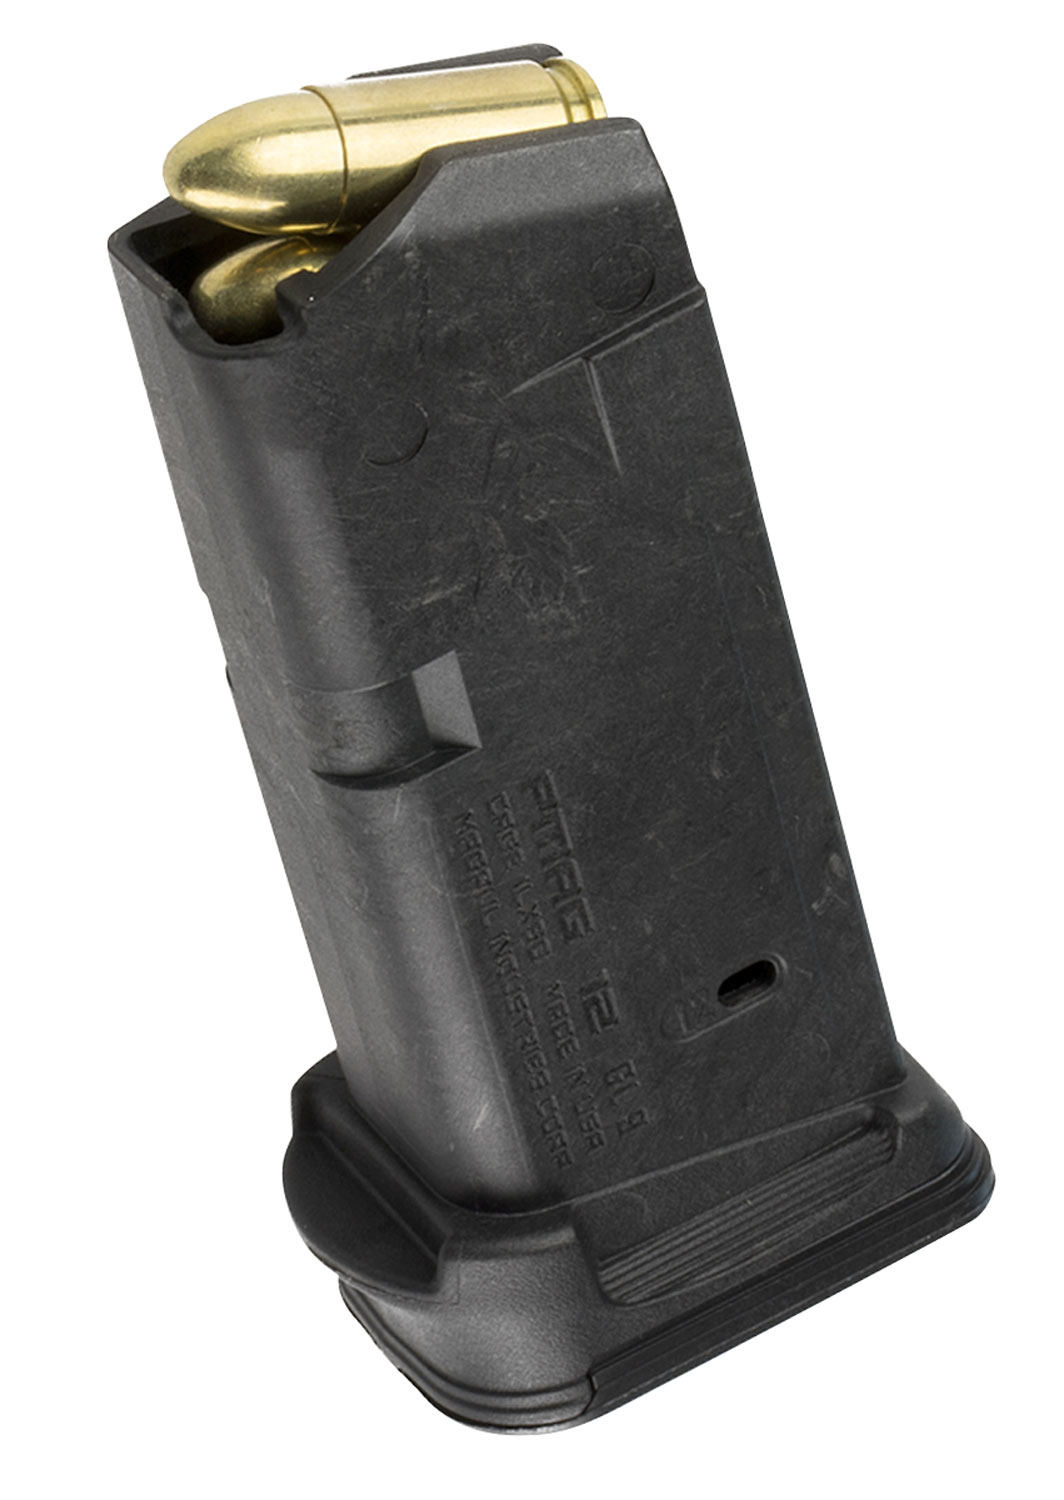 MAGPUL PMAG FOR GLOCK 26 12RD BLK